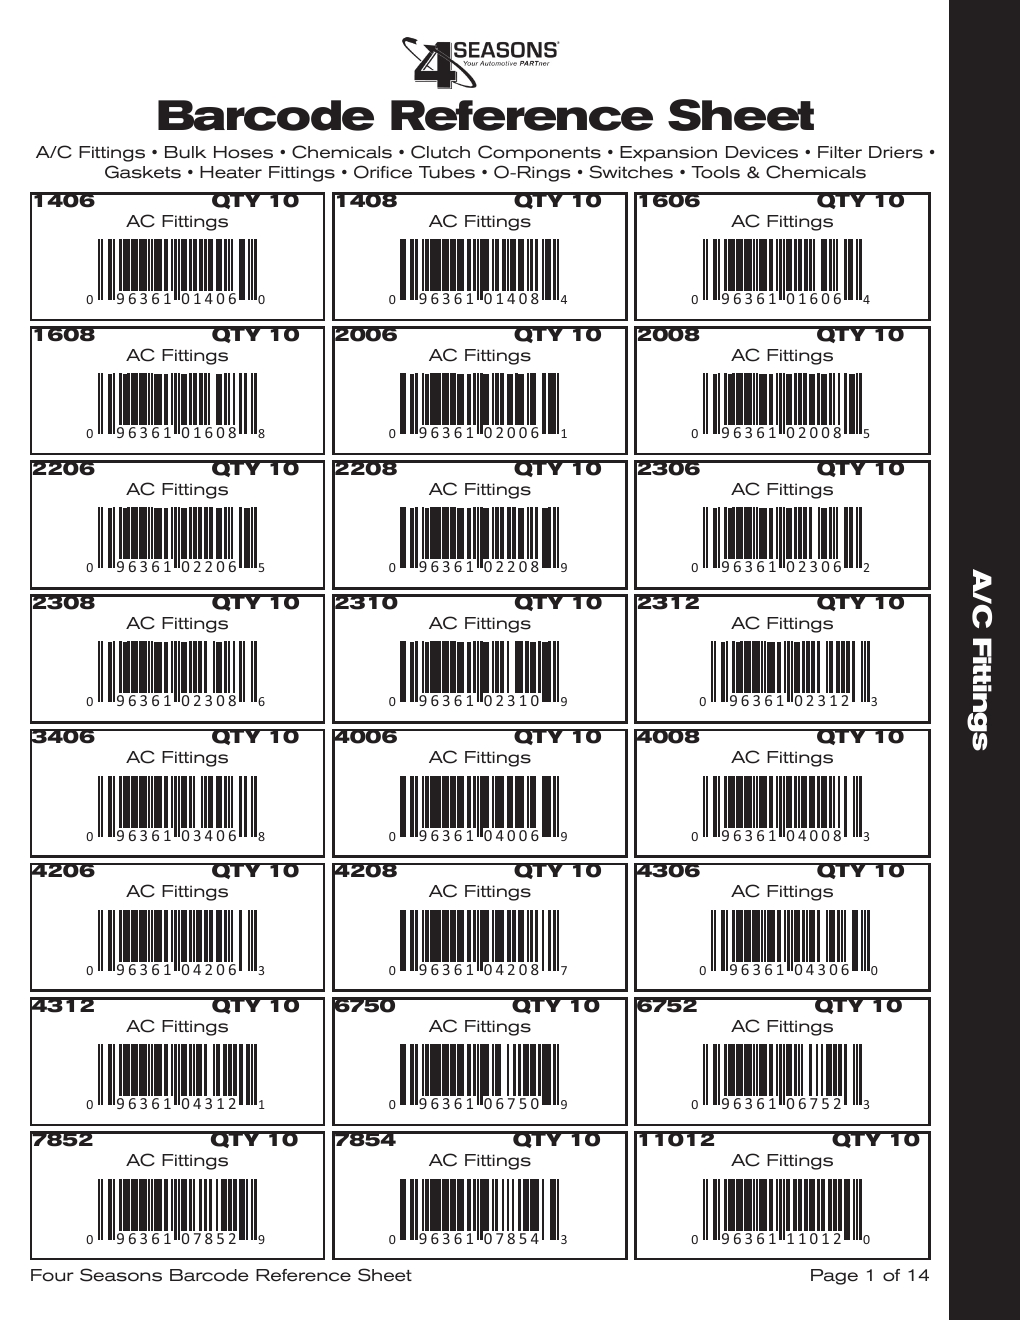 barcode reference sheet powered by pageturnpro com